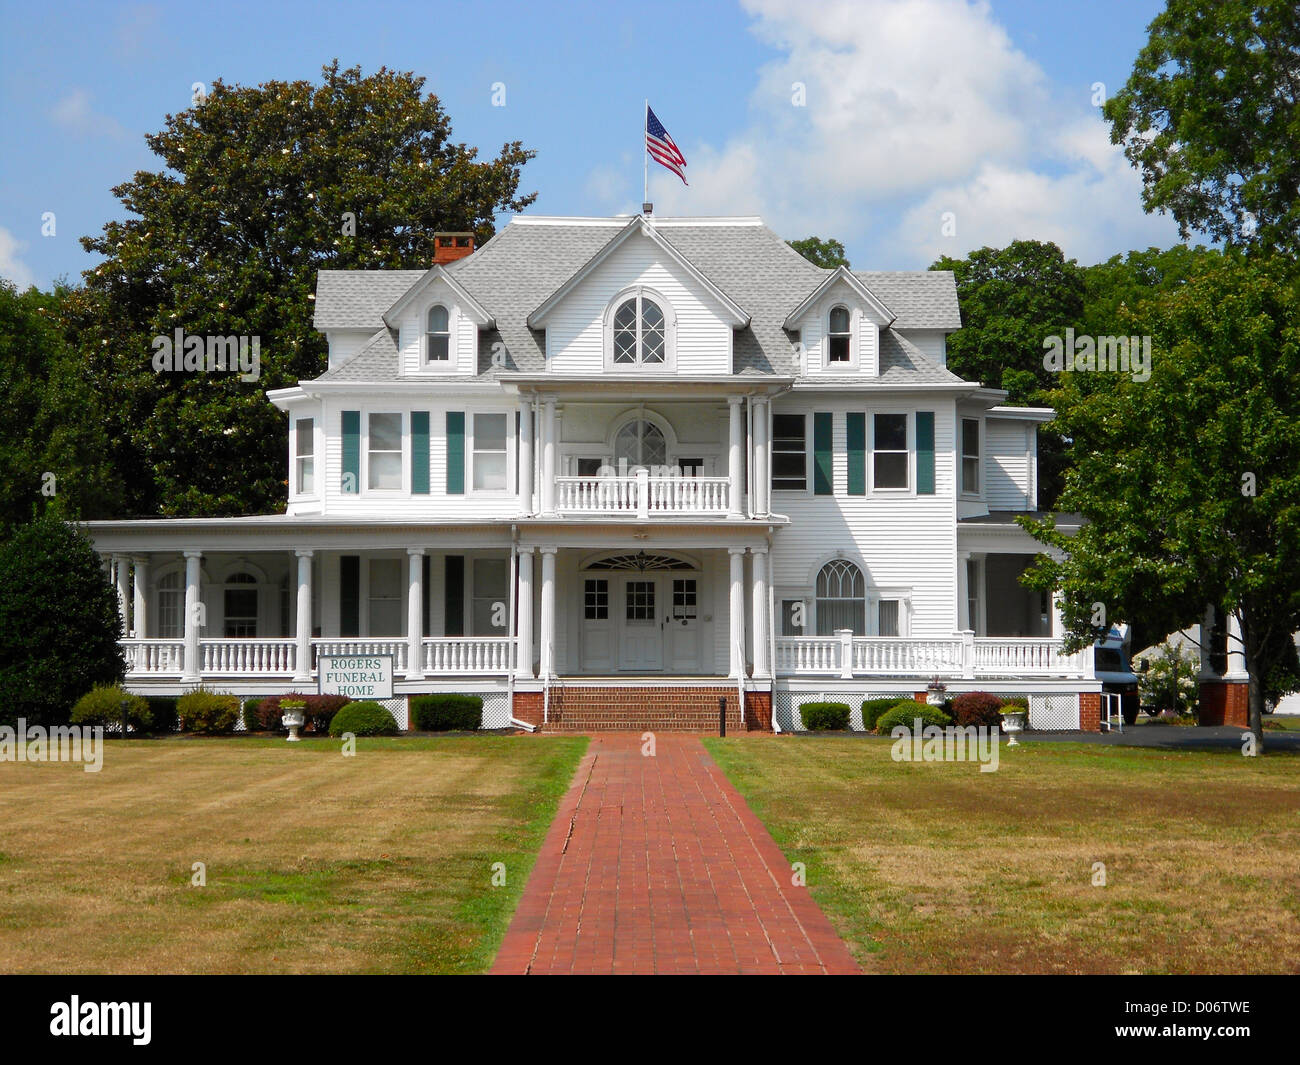 Grier House on the NRHP since January 7, 1983. At 301 Lakeview Ave. Milford, Sussex County, Delaware. - Stock Image